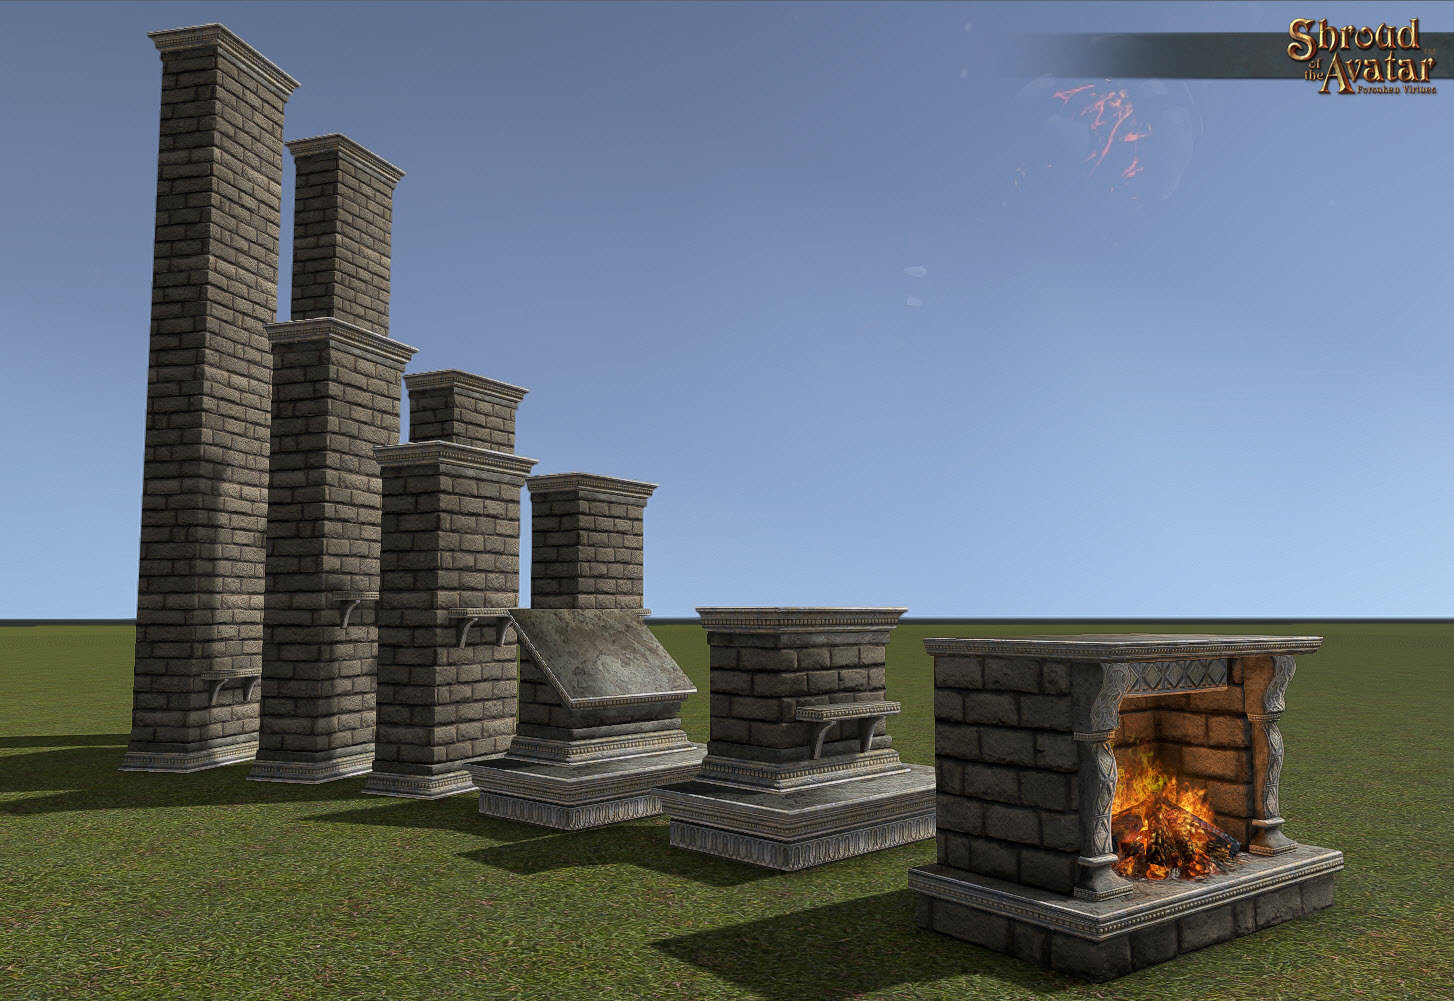 Large Ornate Stone Chimney Floor Extension - Shroud of the Avatar